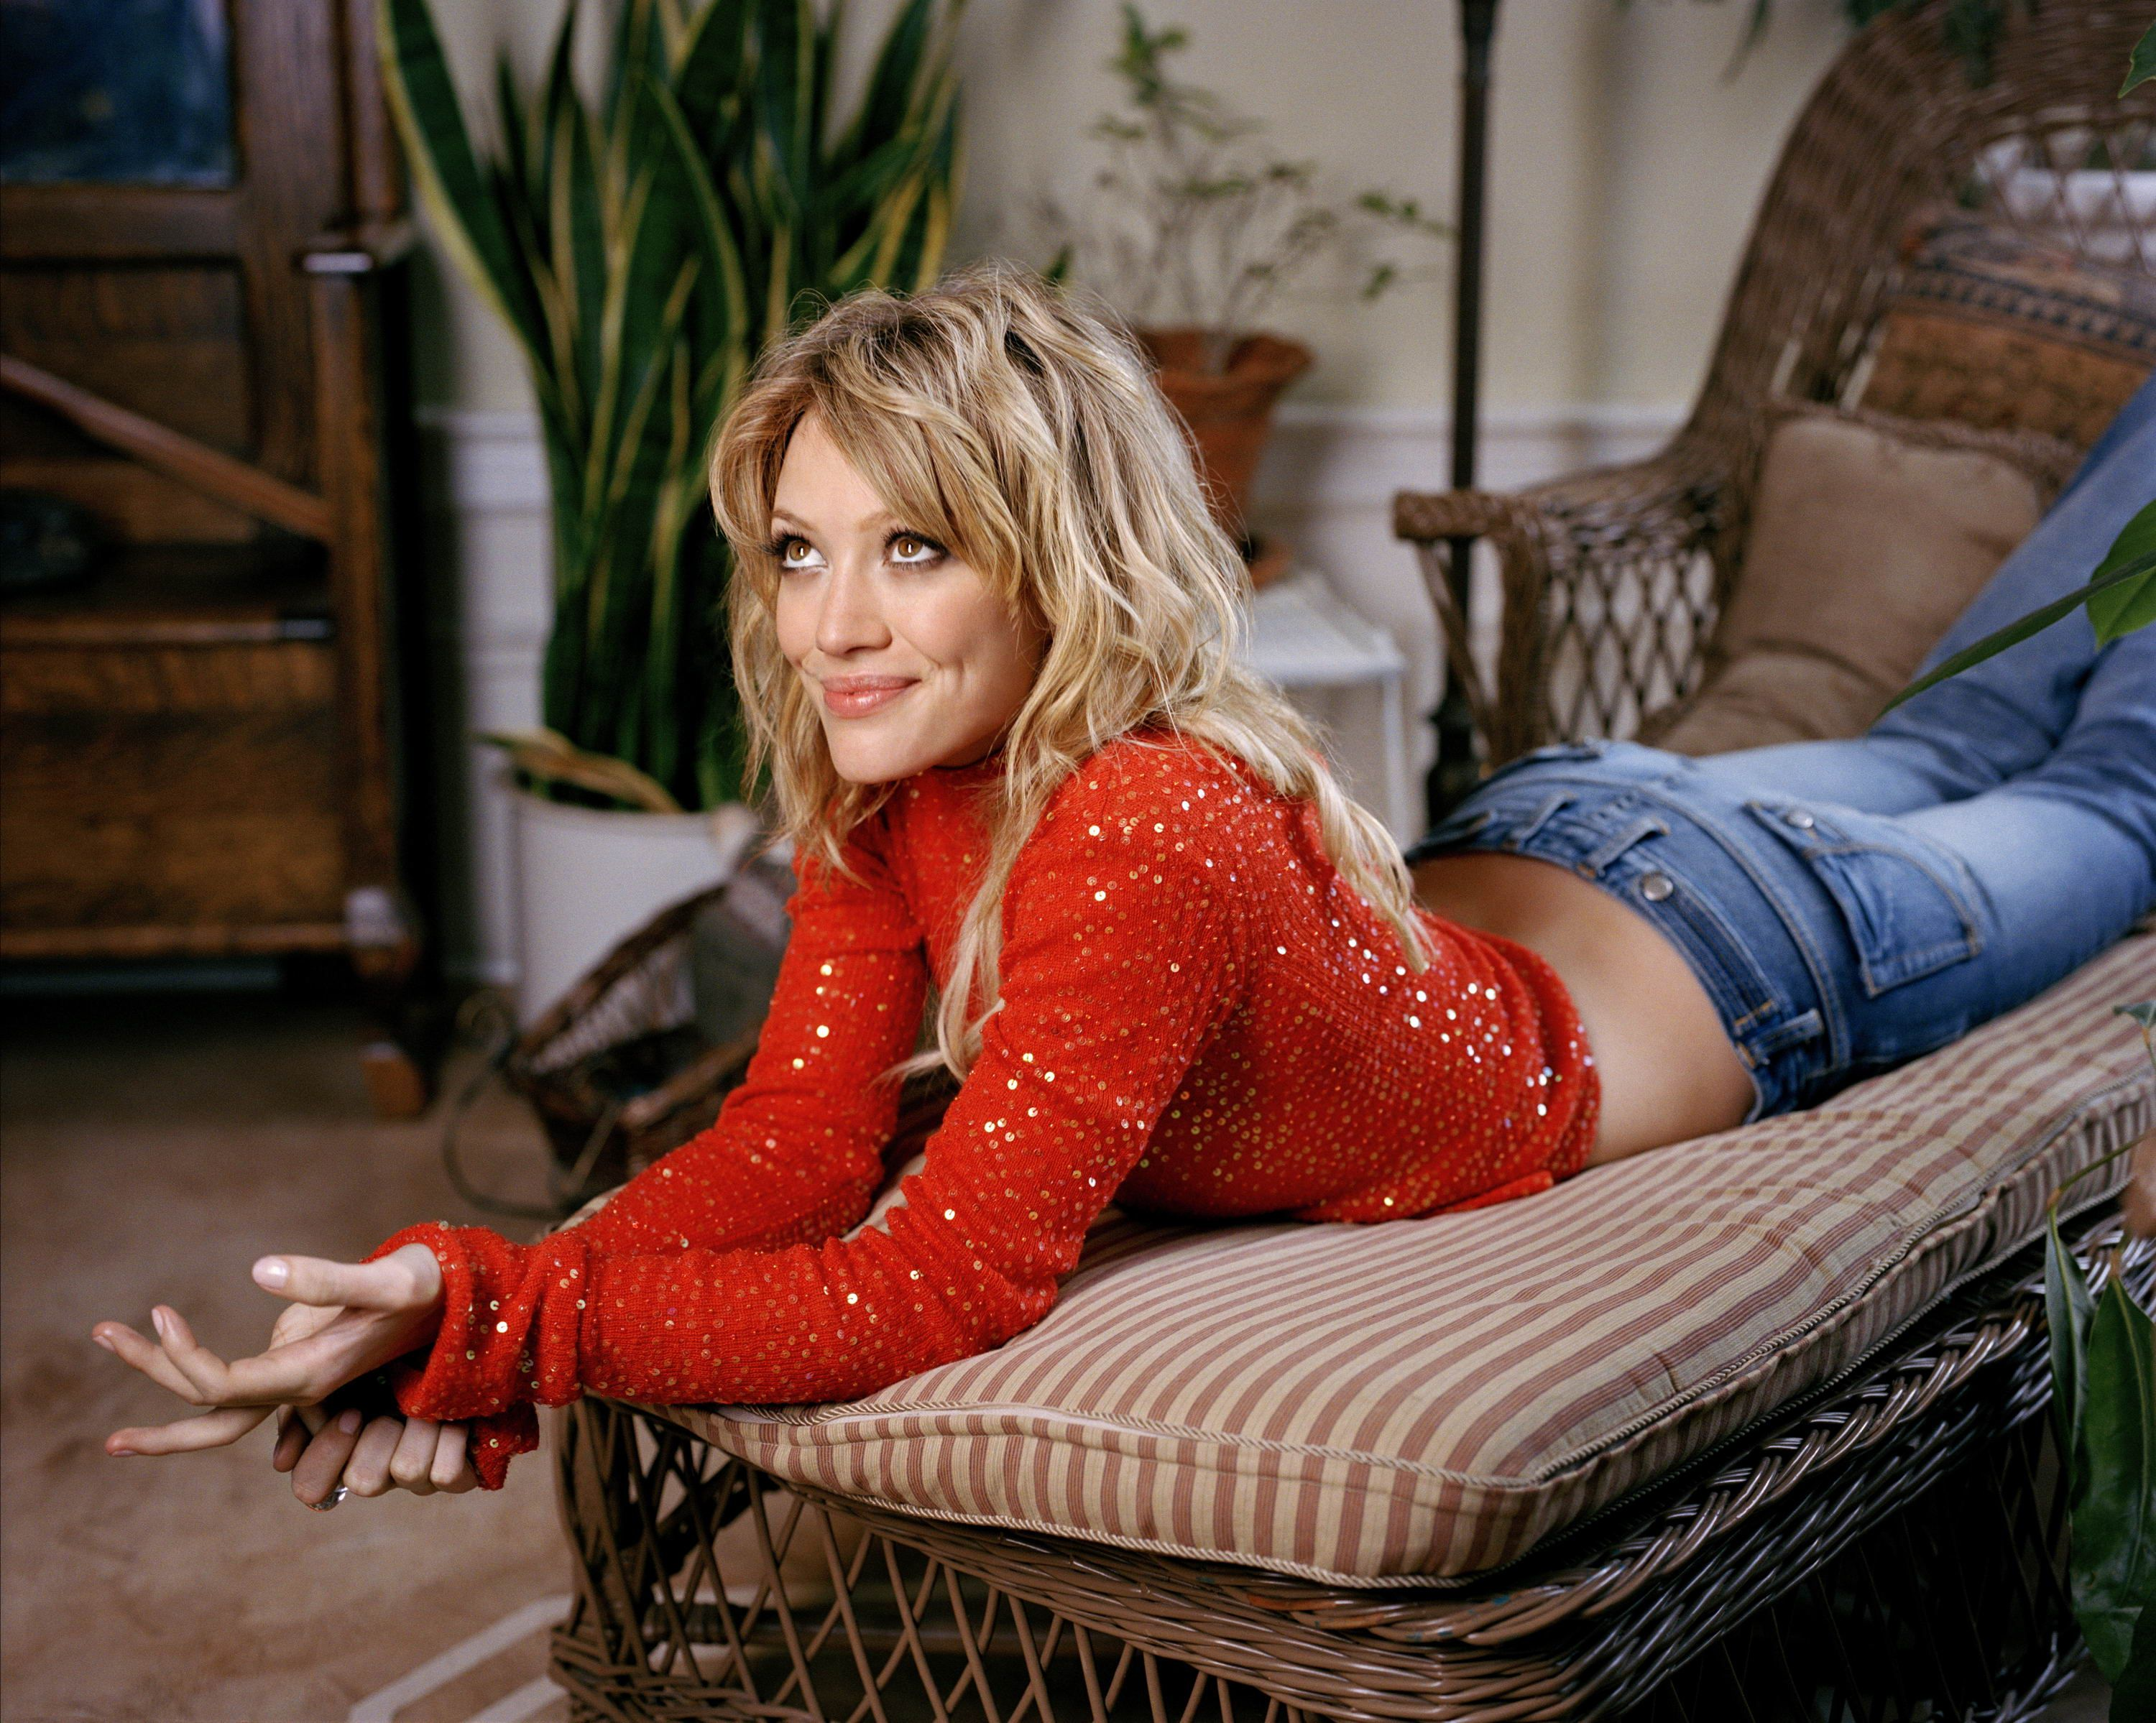 Celebrity Pictures Your Favorite Source For Hq Photos Pictures Gallery Hq High Quality Click Image To Close This Win The Duff Hilary Duff Hillary Duff